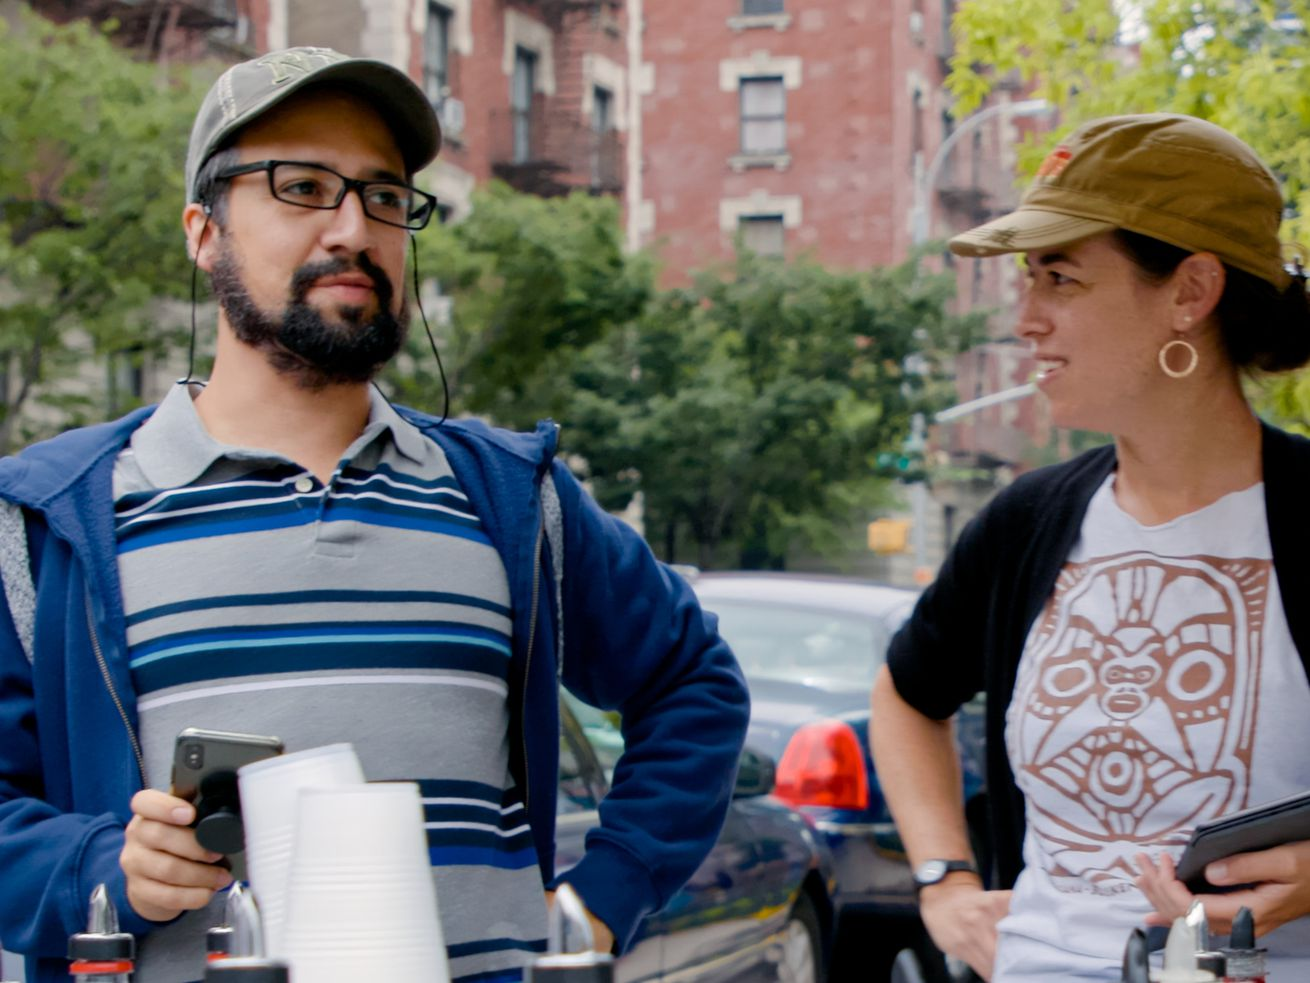 A man and a woman stand talking to one another on a film set.